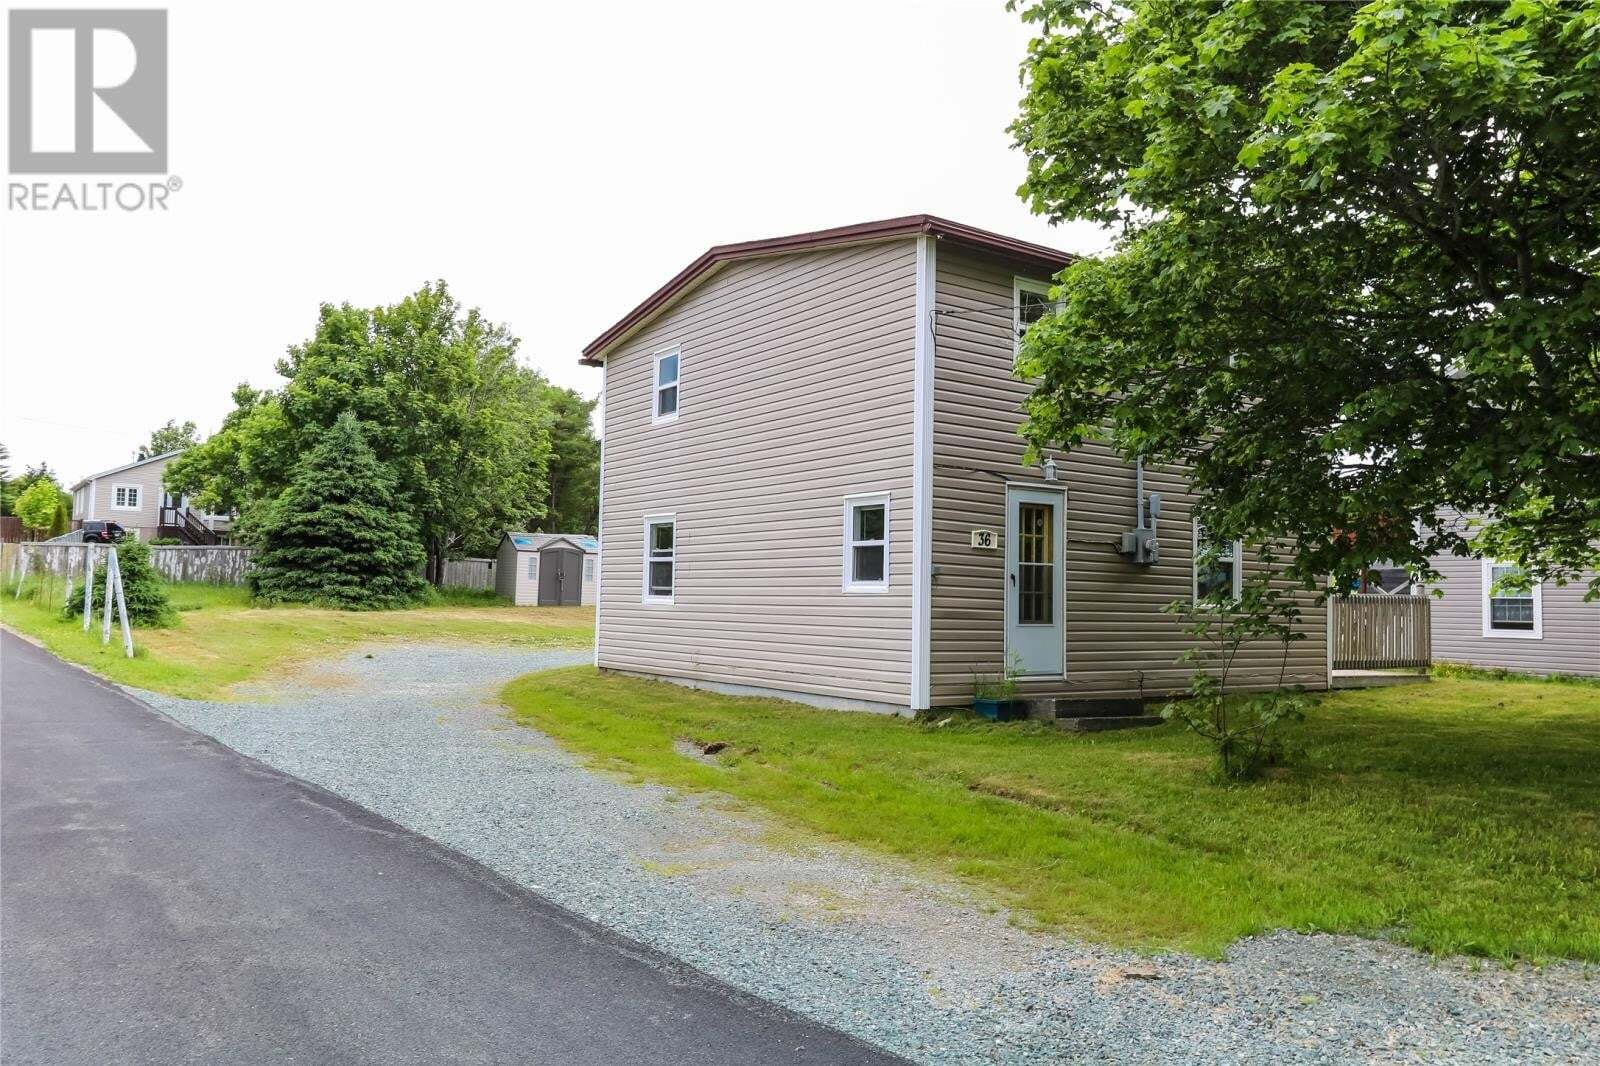 House for sale at 36 Patrick's Path Torbay Newfoundland - MLS: 1216871